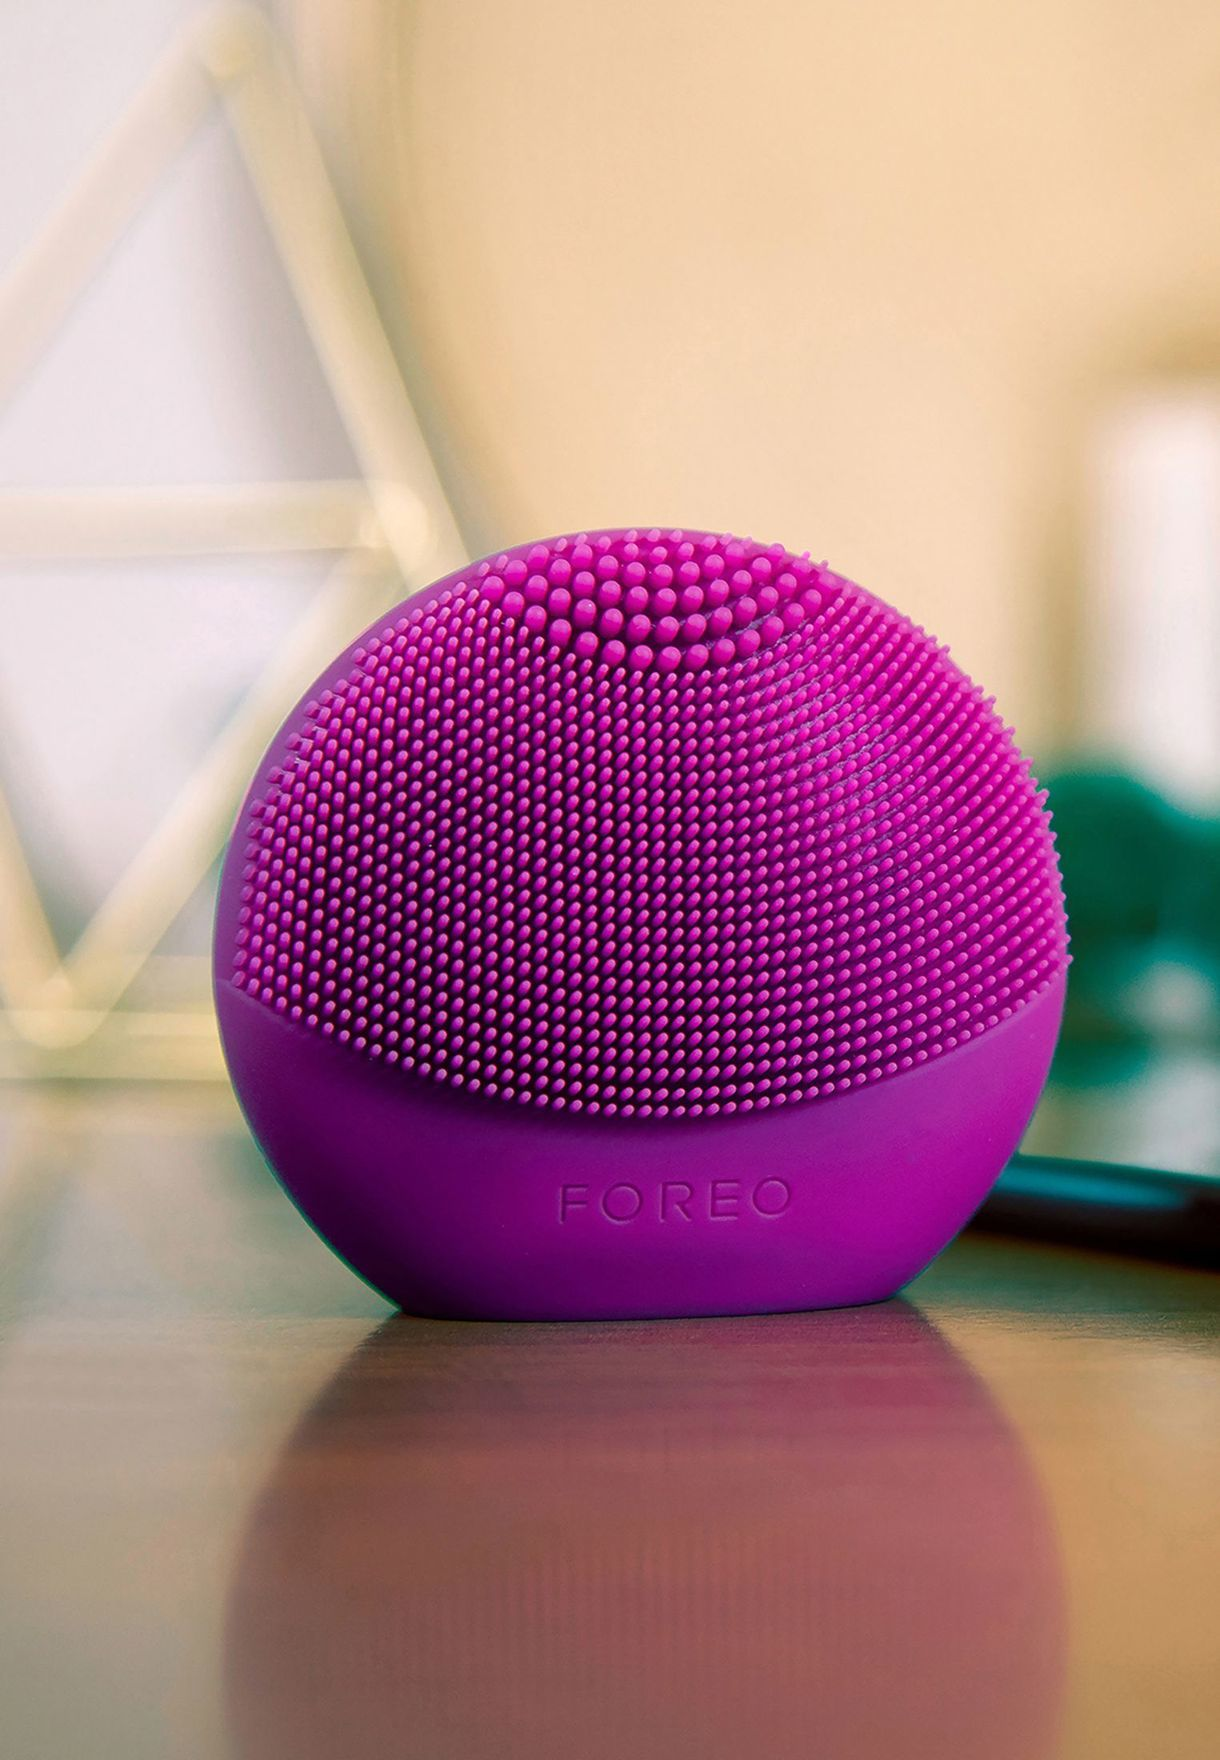 Foreo LUNA Fofo Face Brush with Skin Analysis Purple